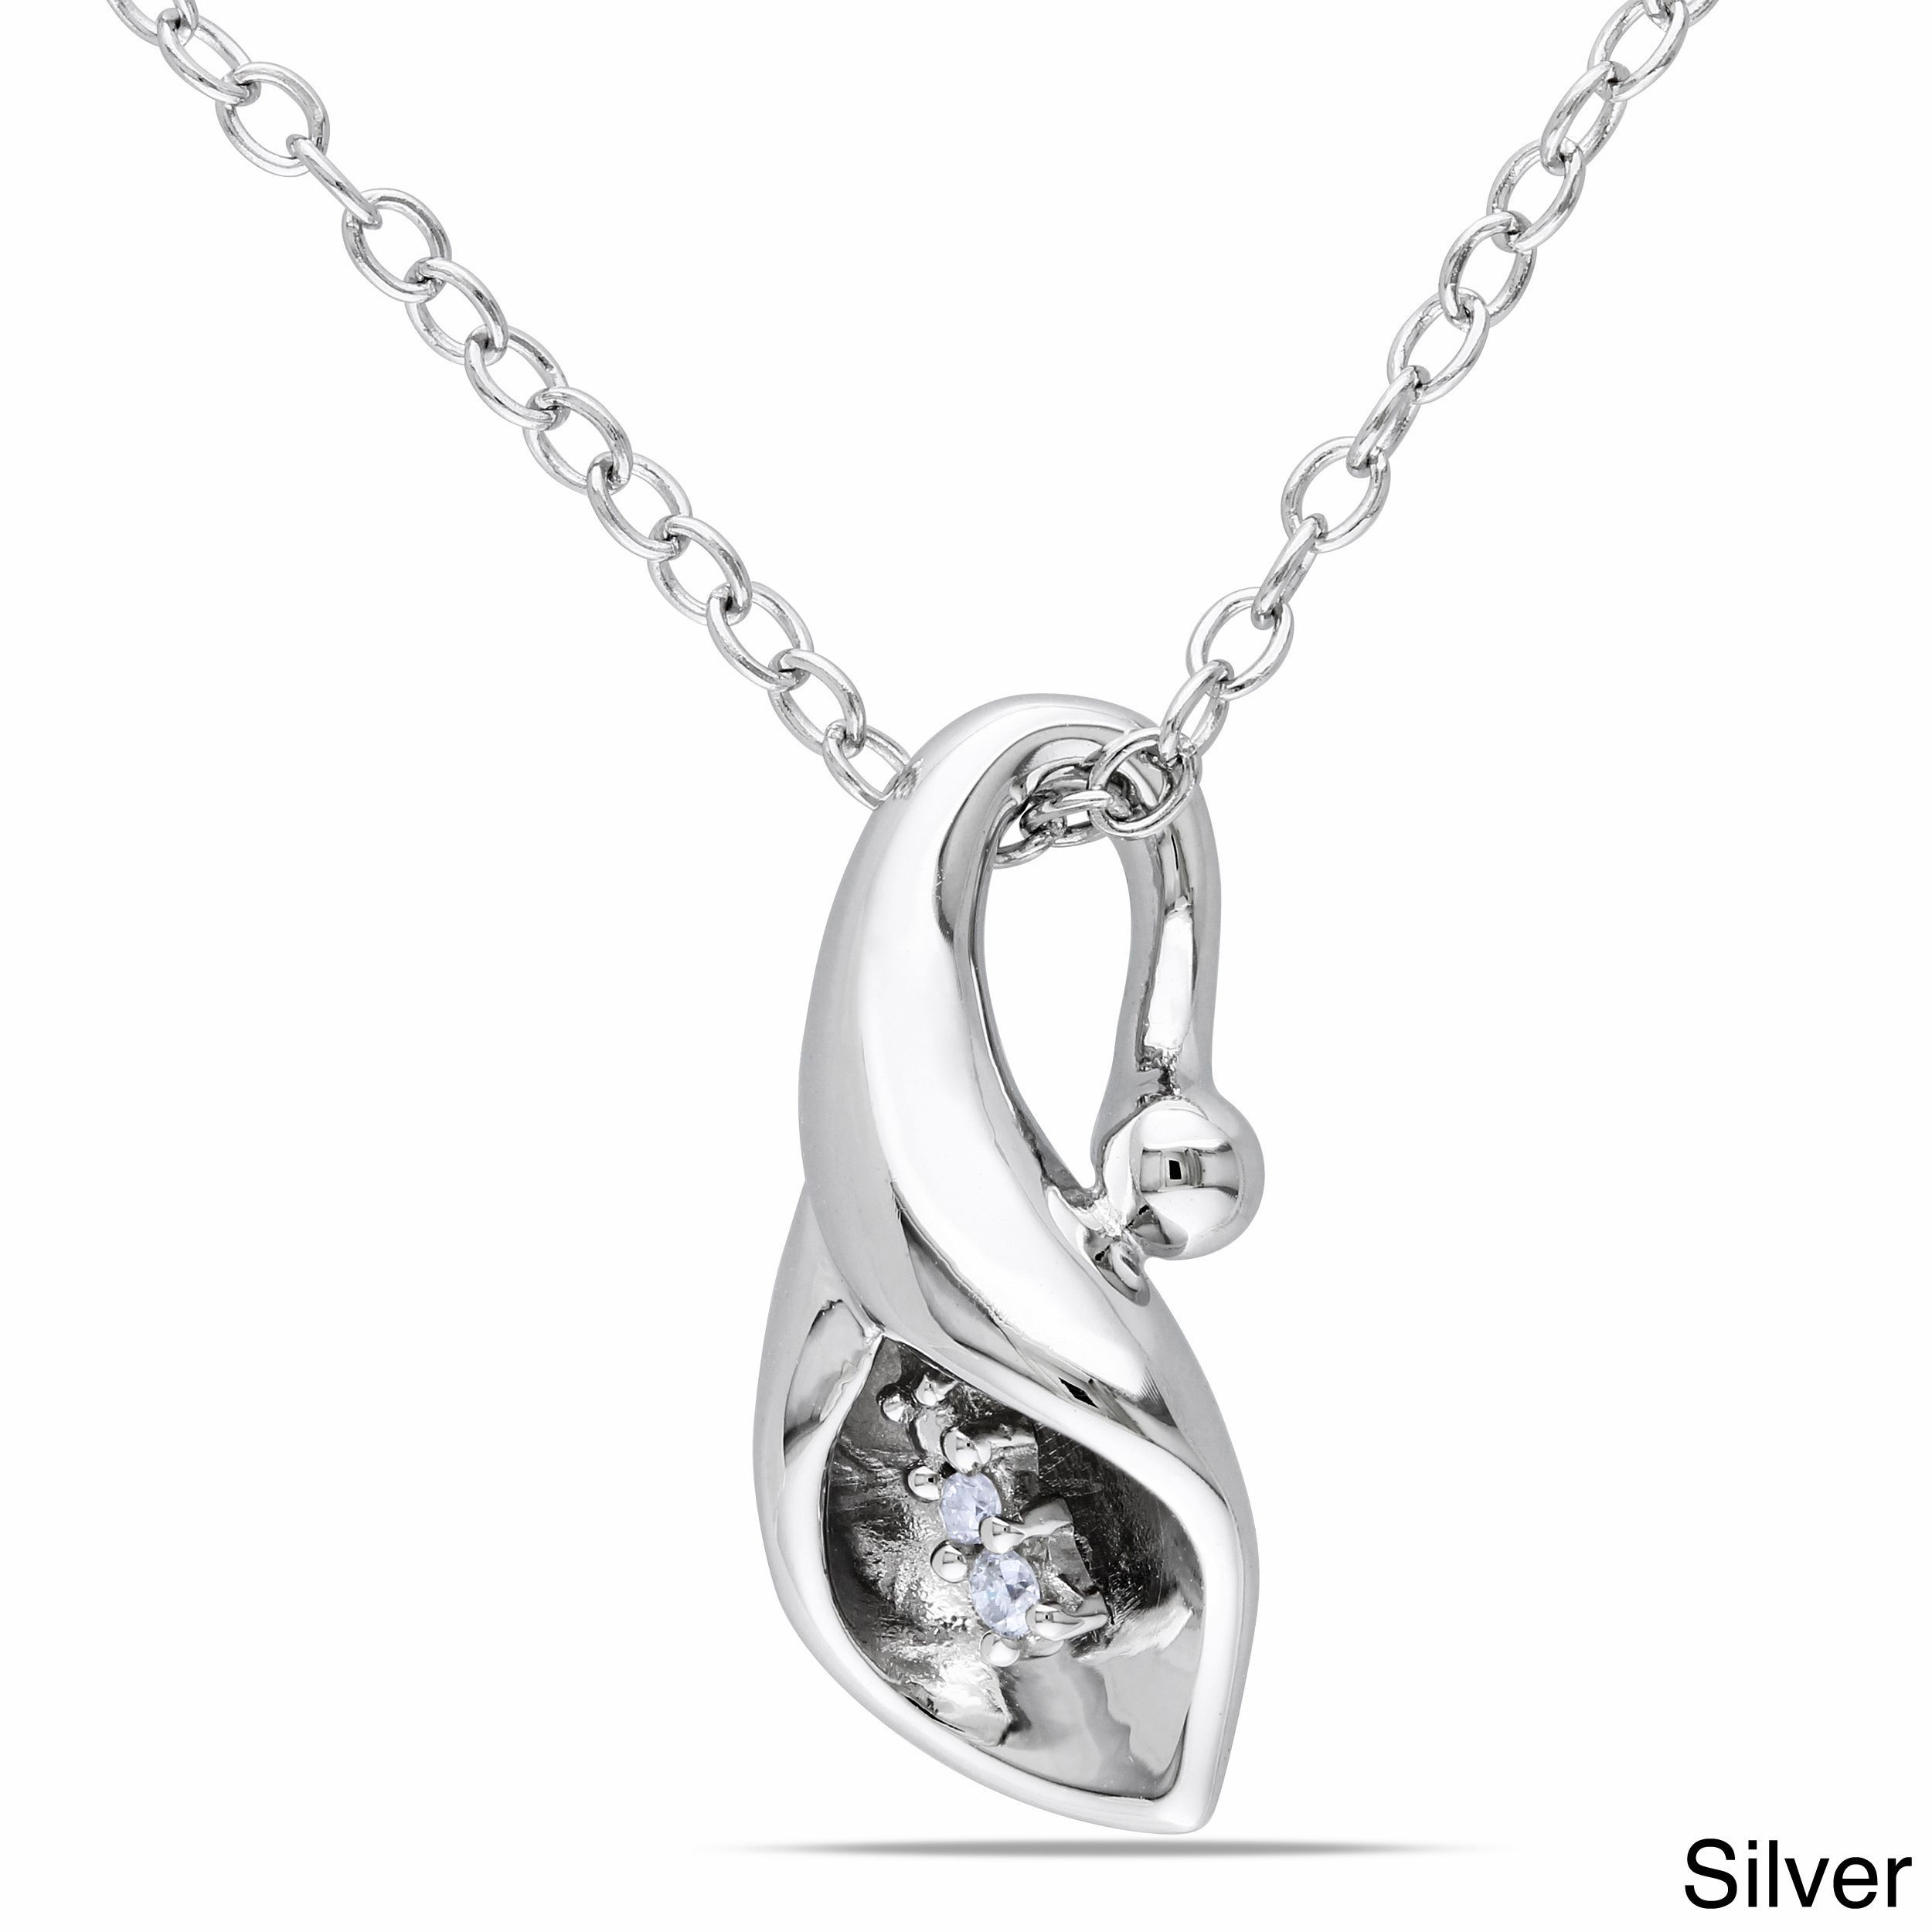 This attractive diamond accent necklace will complement any ensemble